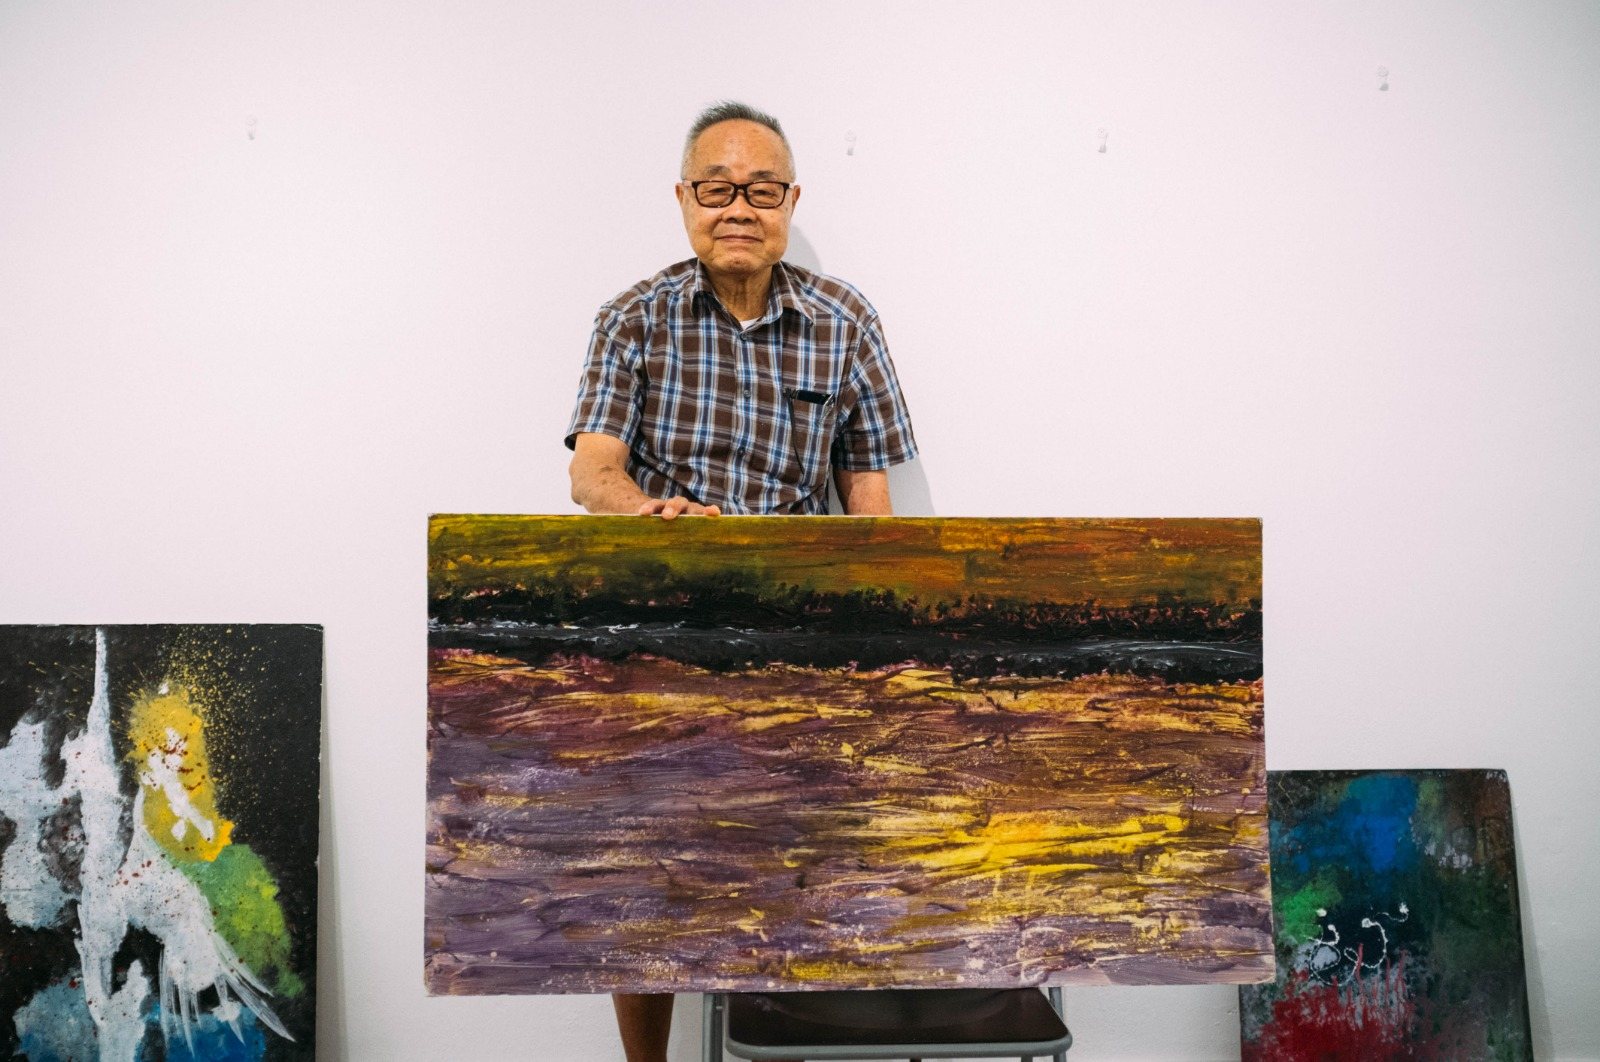 Mr. Johnny Wong with his foam board paintings. Image courtesy of Mothership.SG